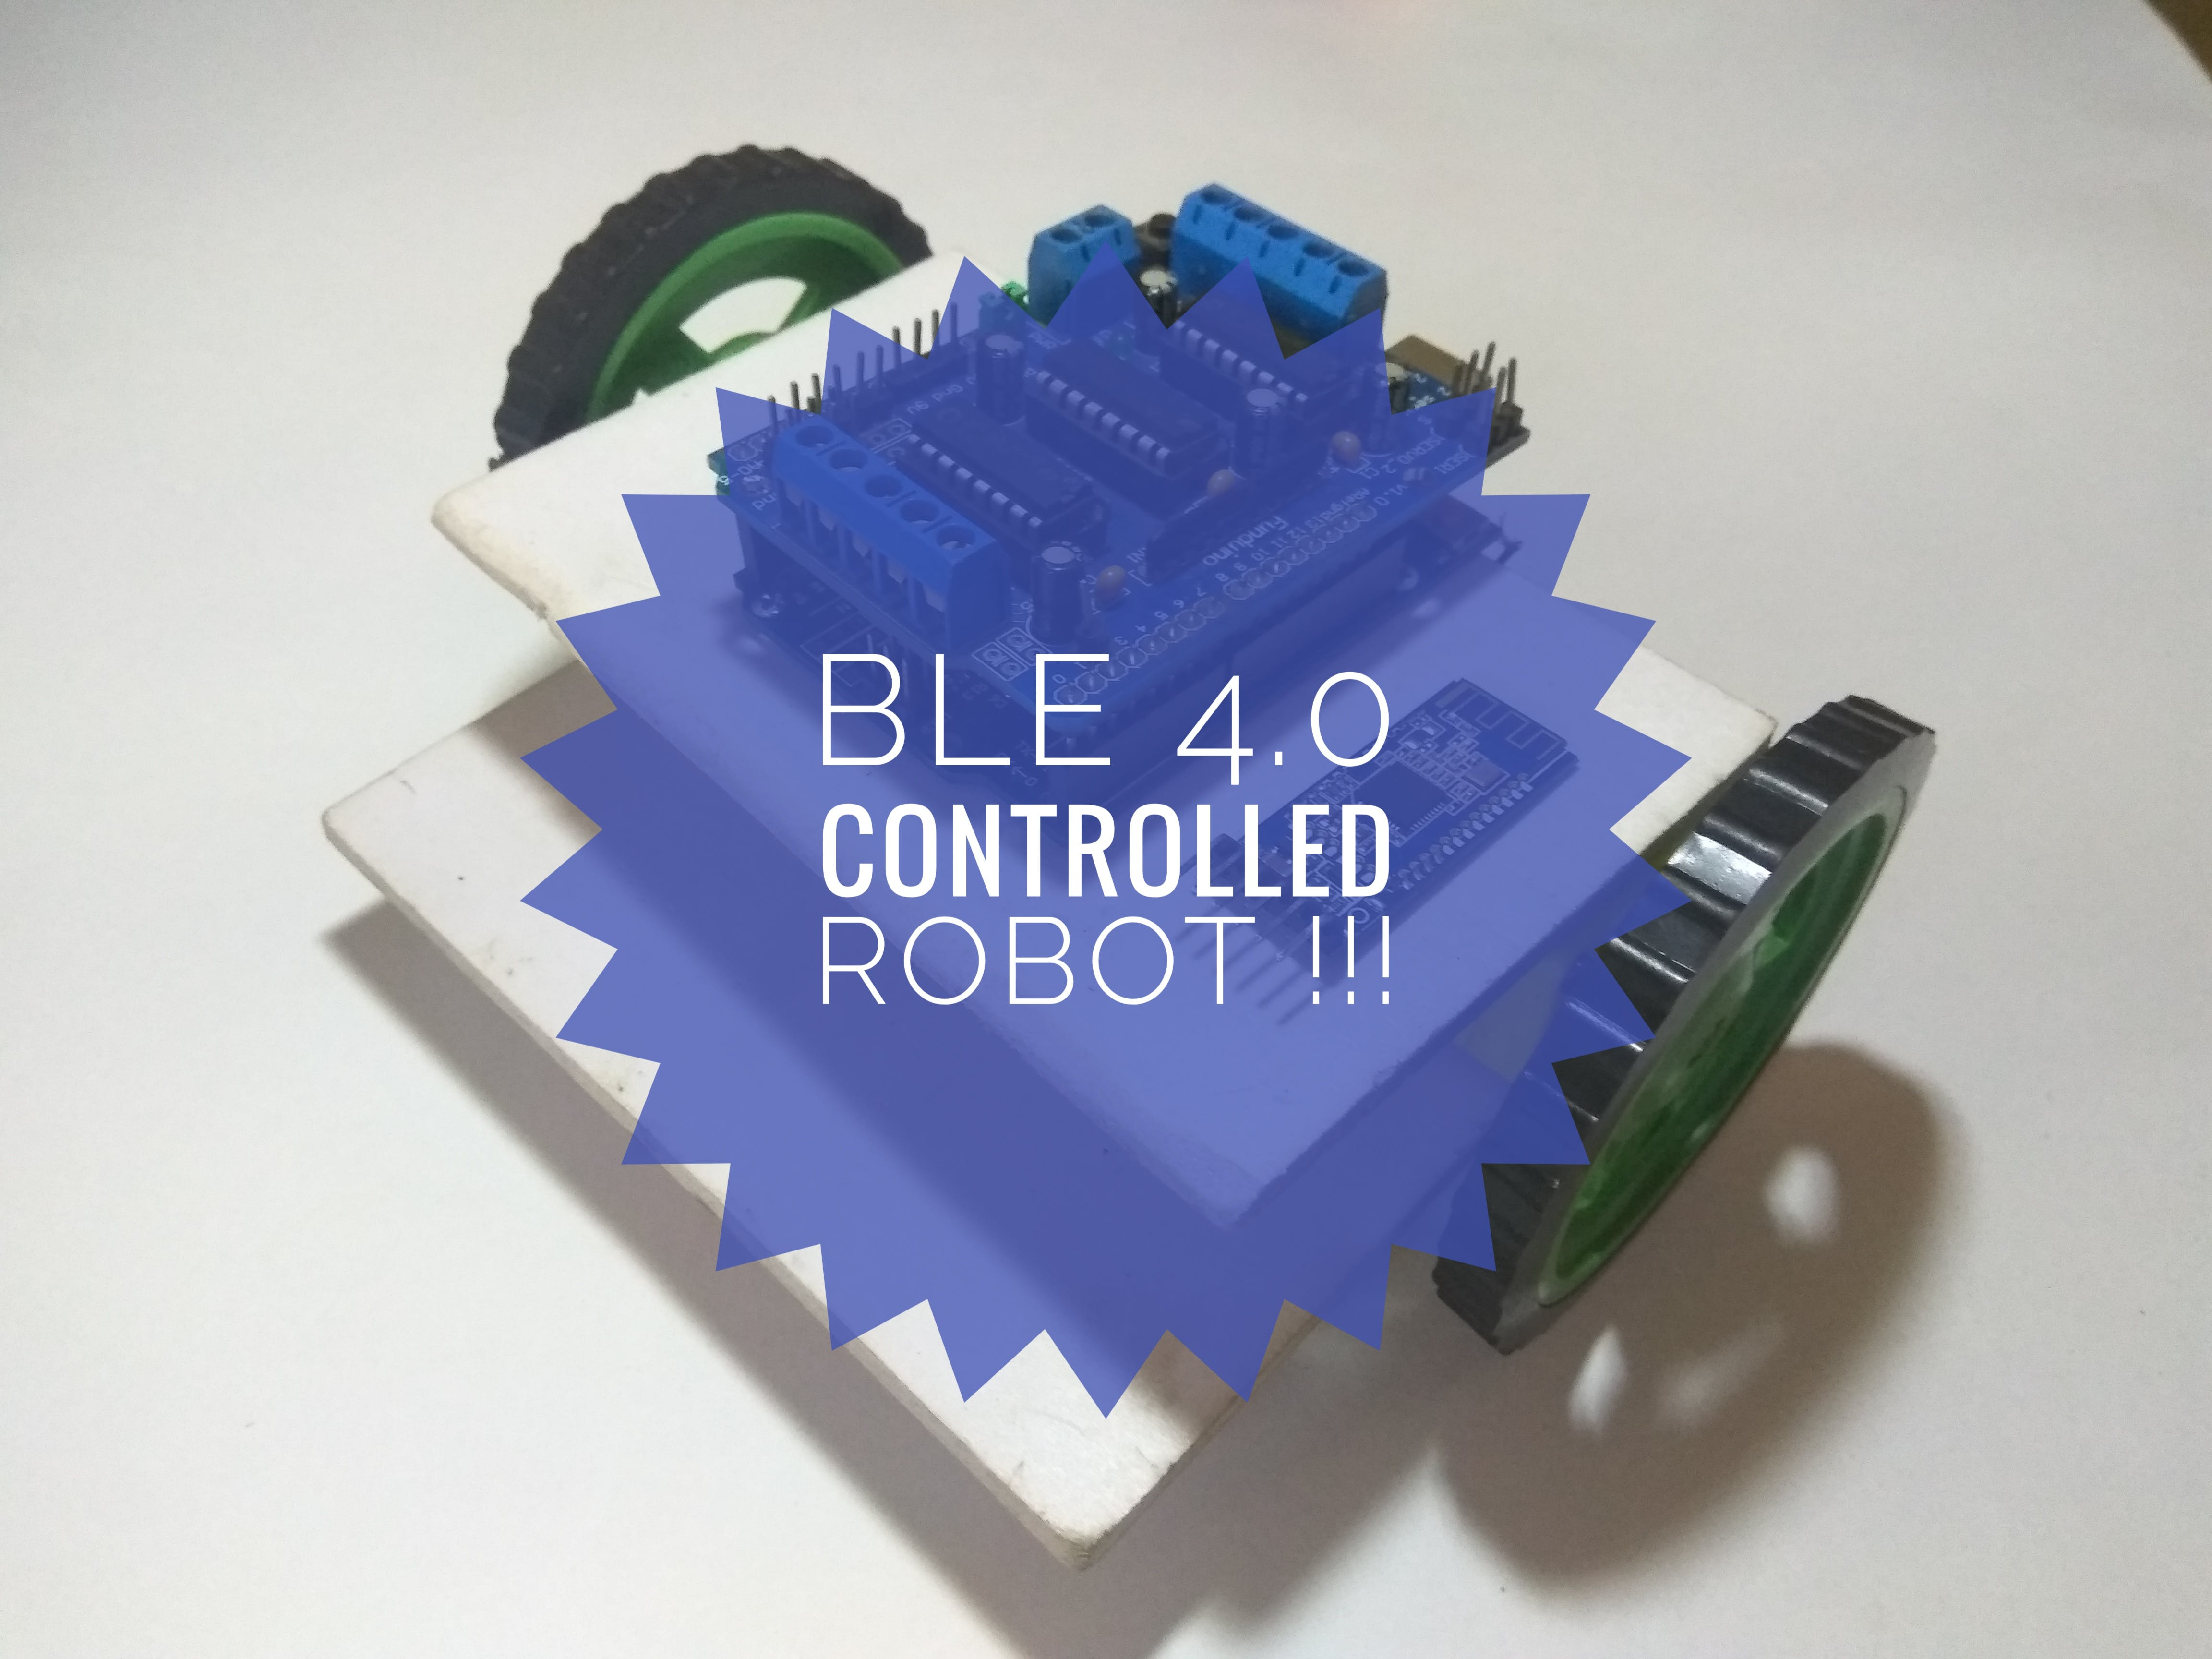 Smartphone-Controlled Robot Using BLE 4.0